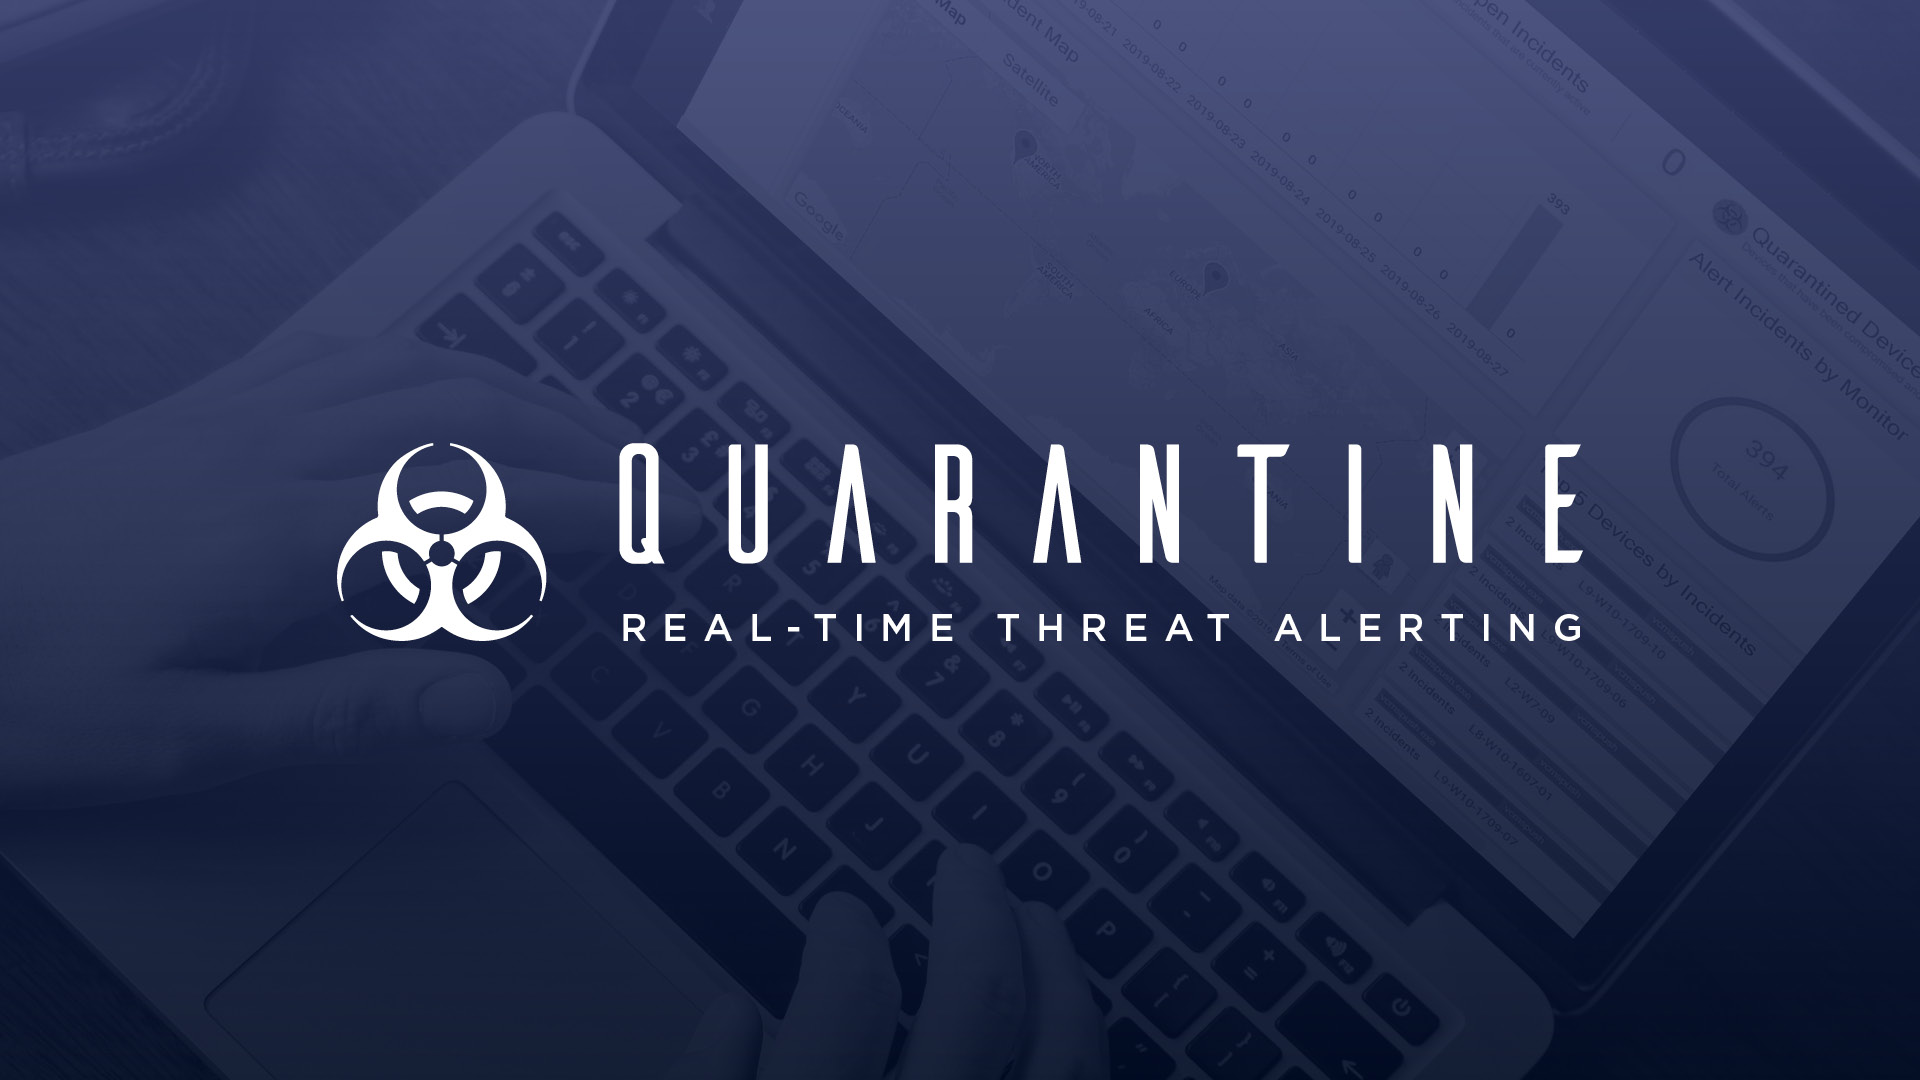 Cyber Security Suite releases Cyber Threat Alerting and Device Quarantine